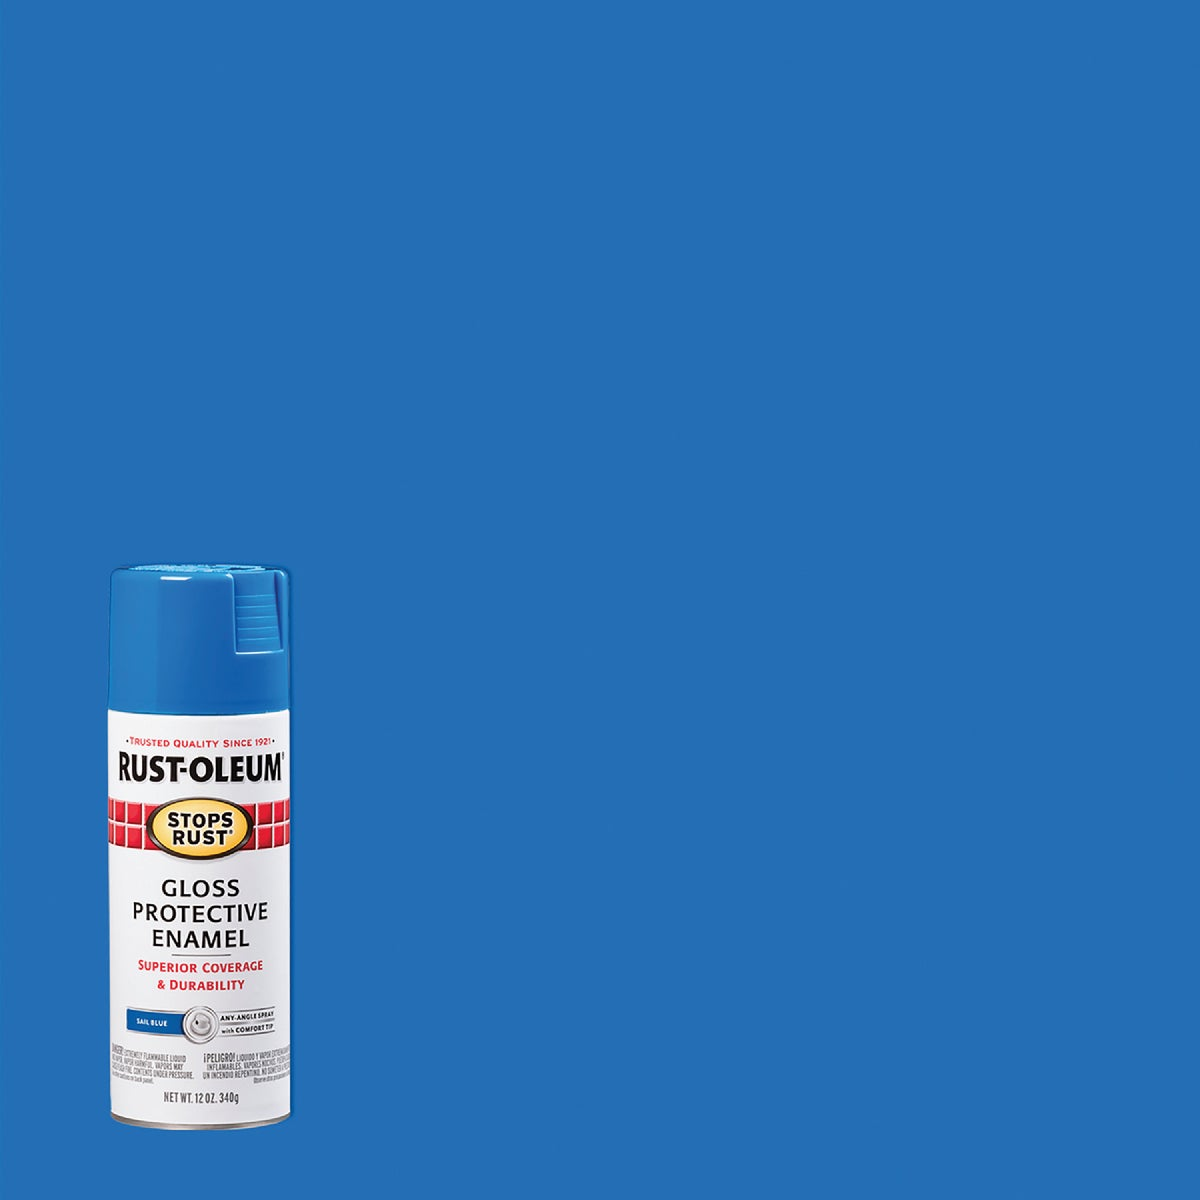 SAIL BLUE SPRAY PAINT - 7724-830 by Rustoleum